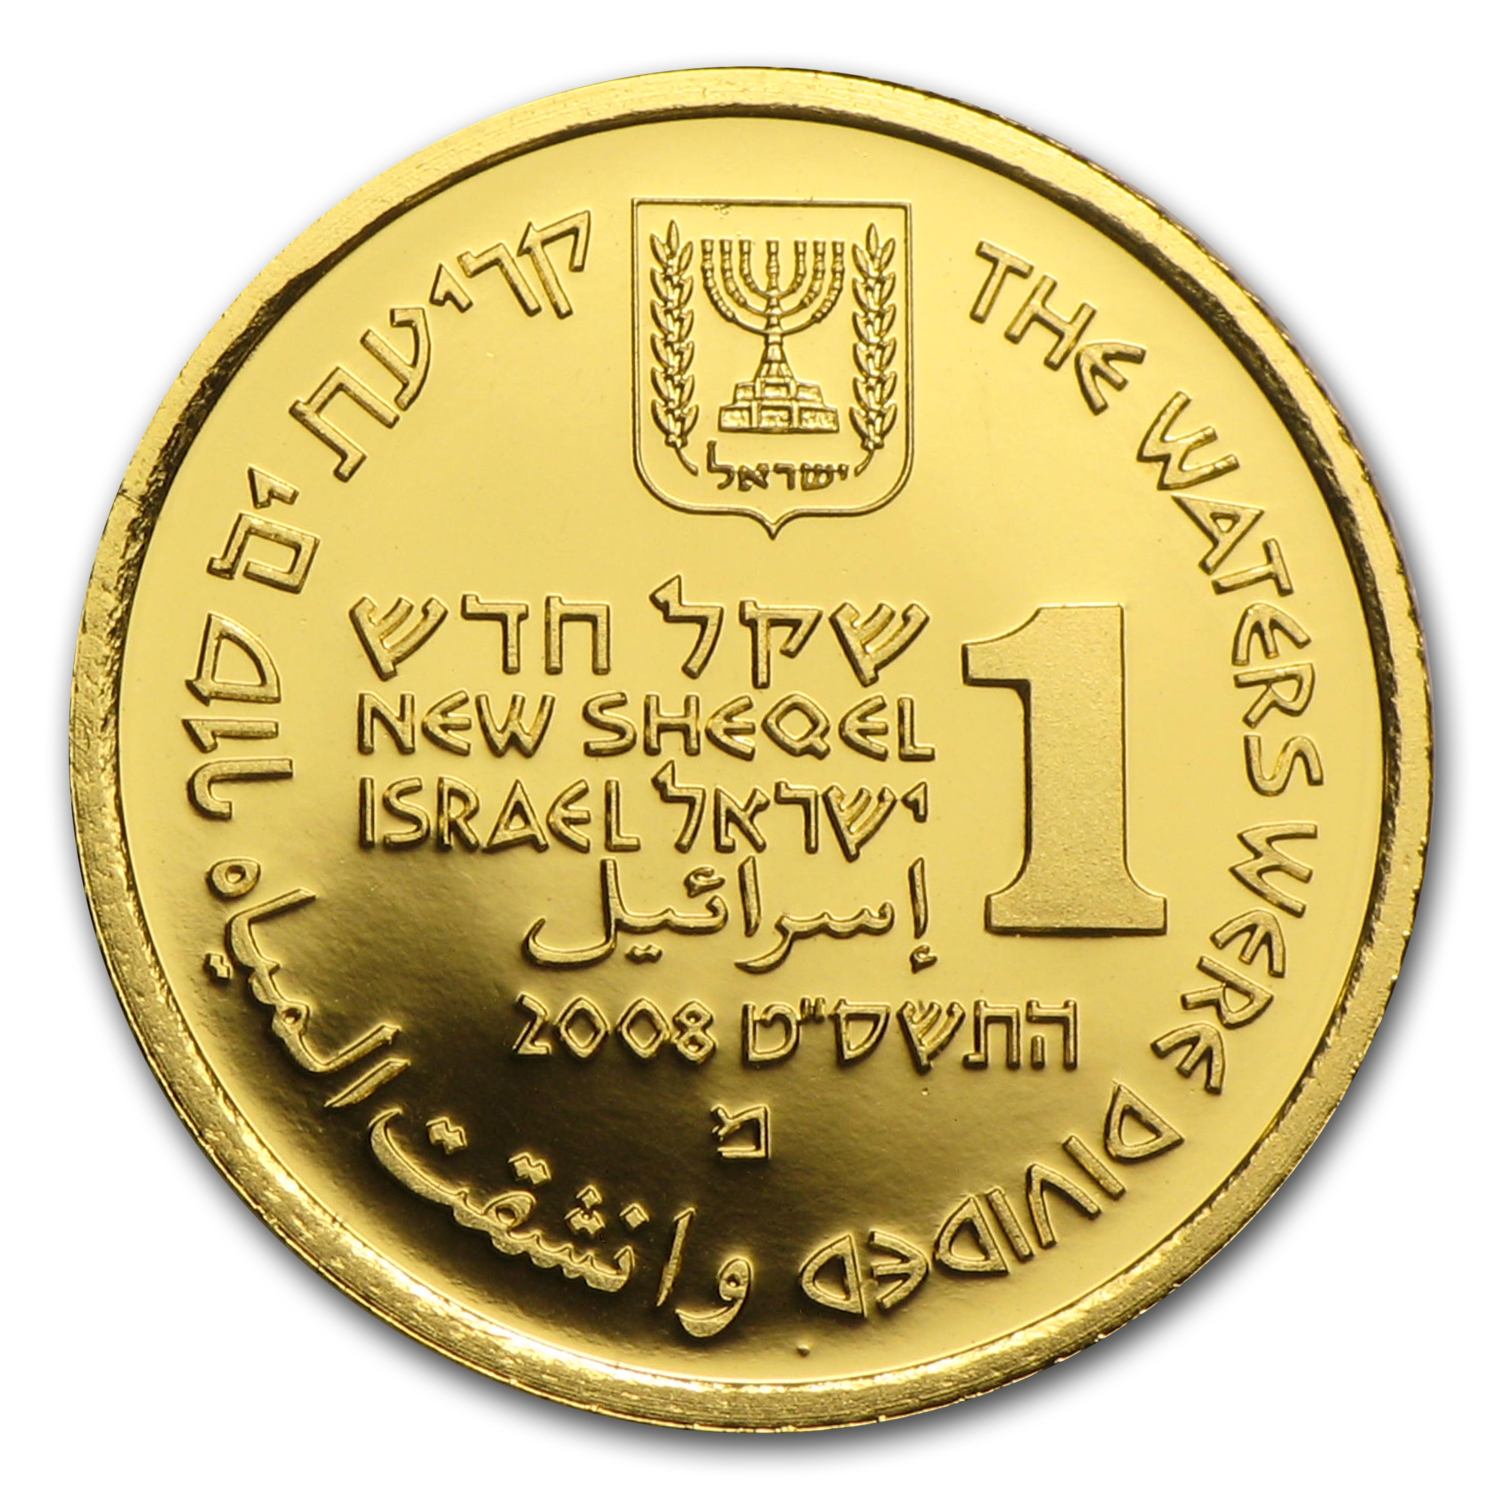 2008 Israel Parting of the Sea - Smallest 1/25 oz Gold Coin